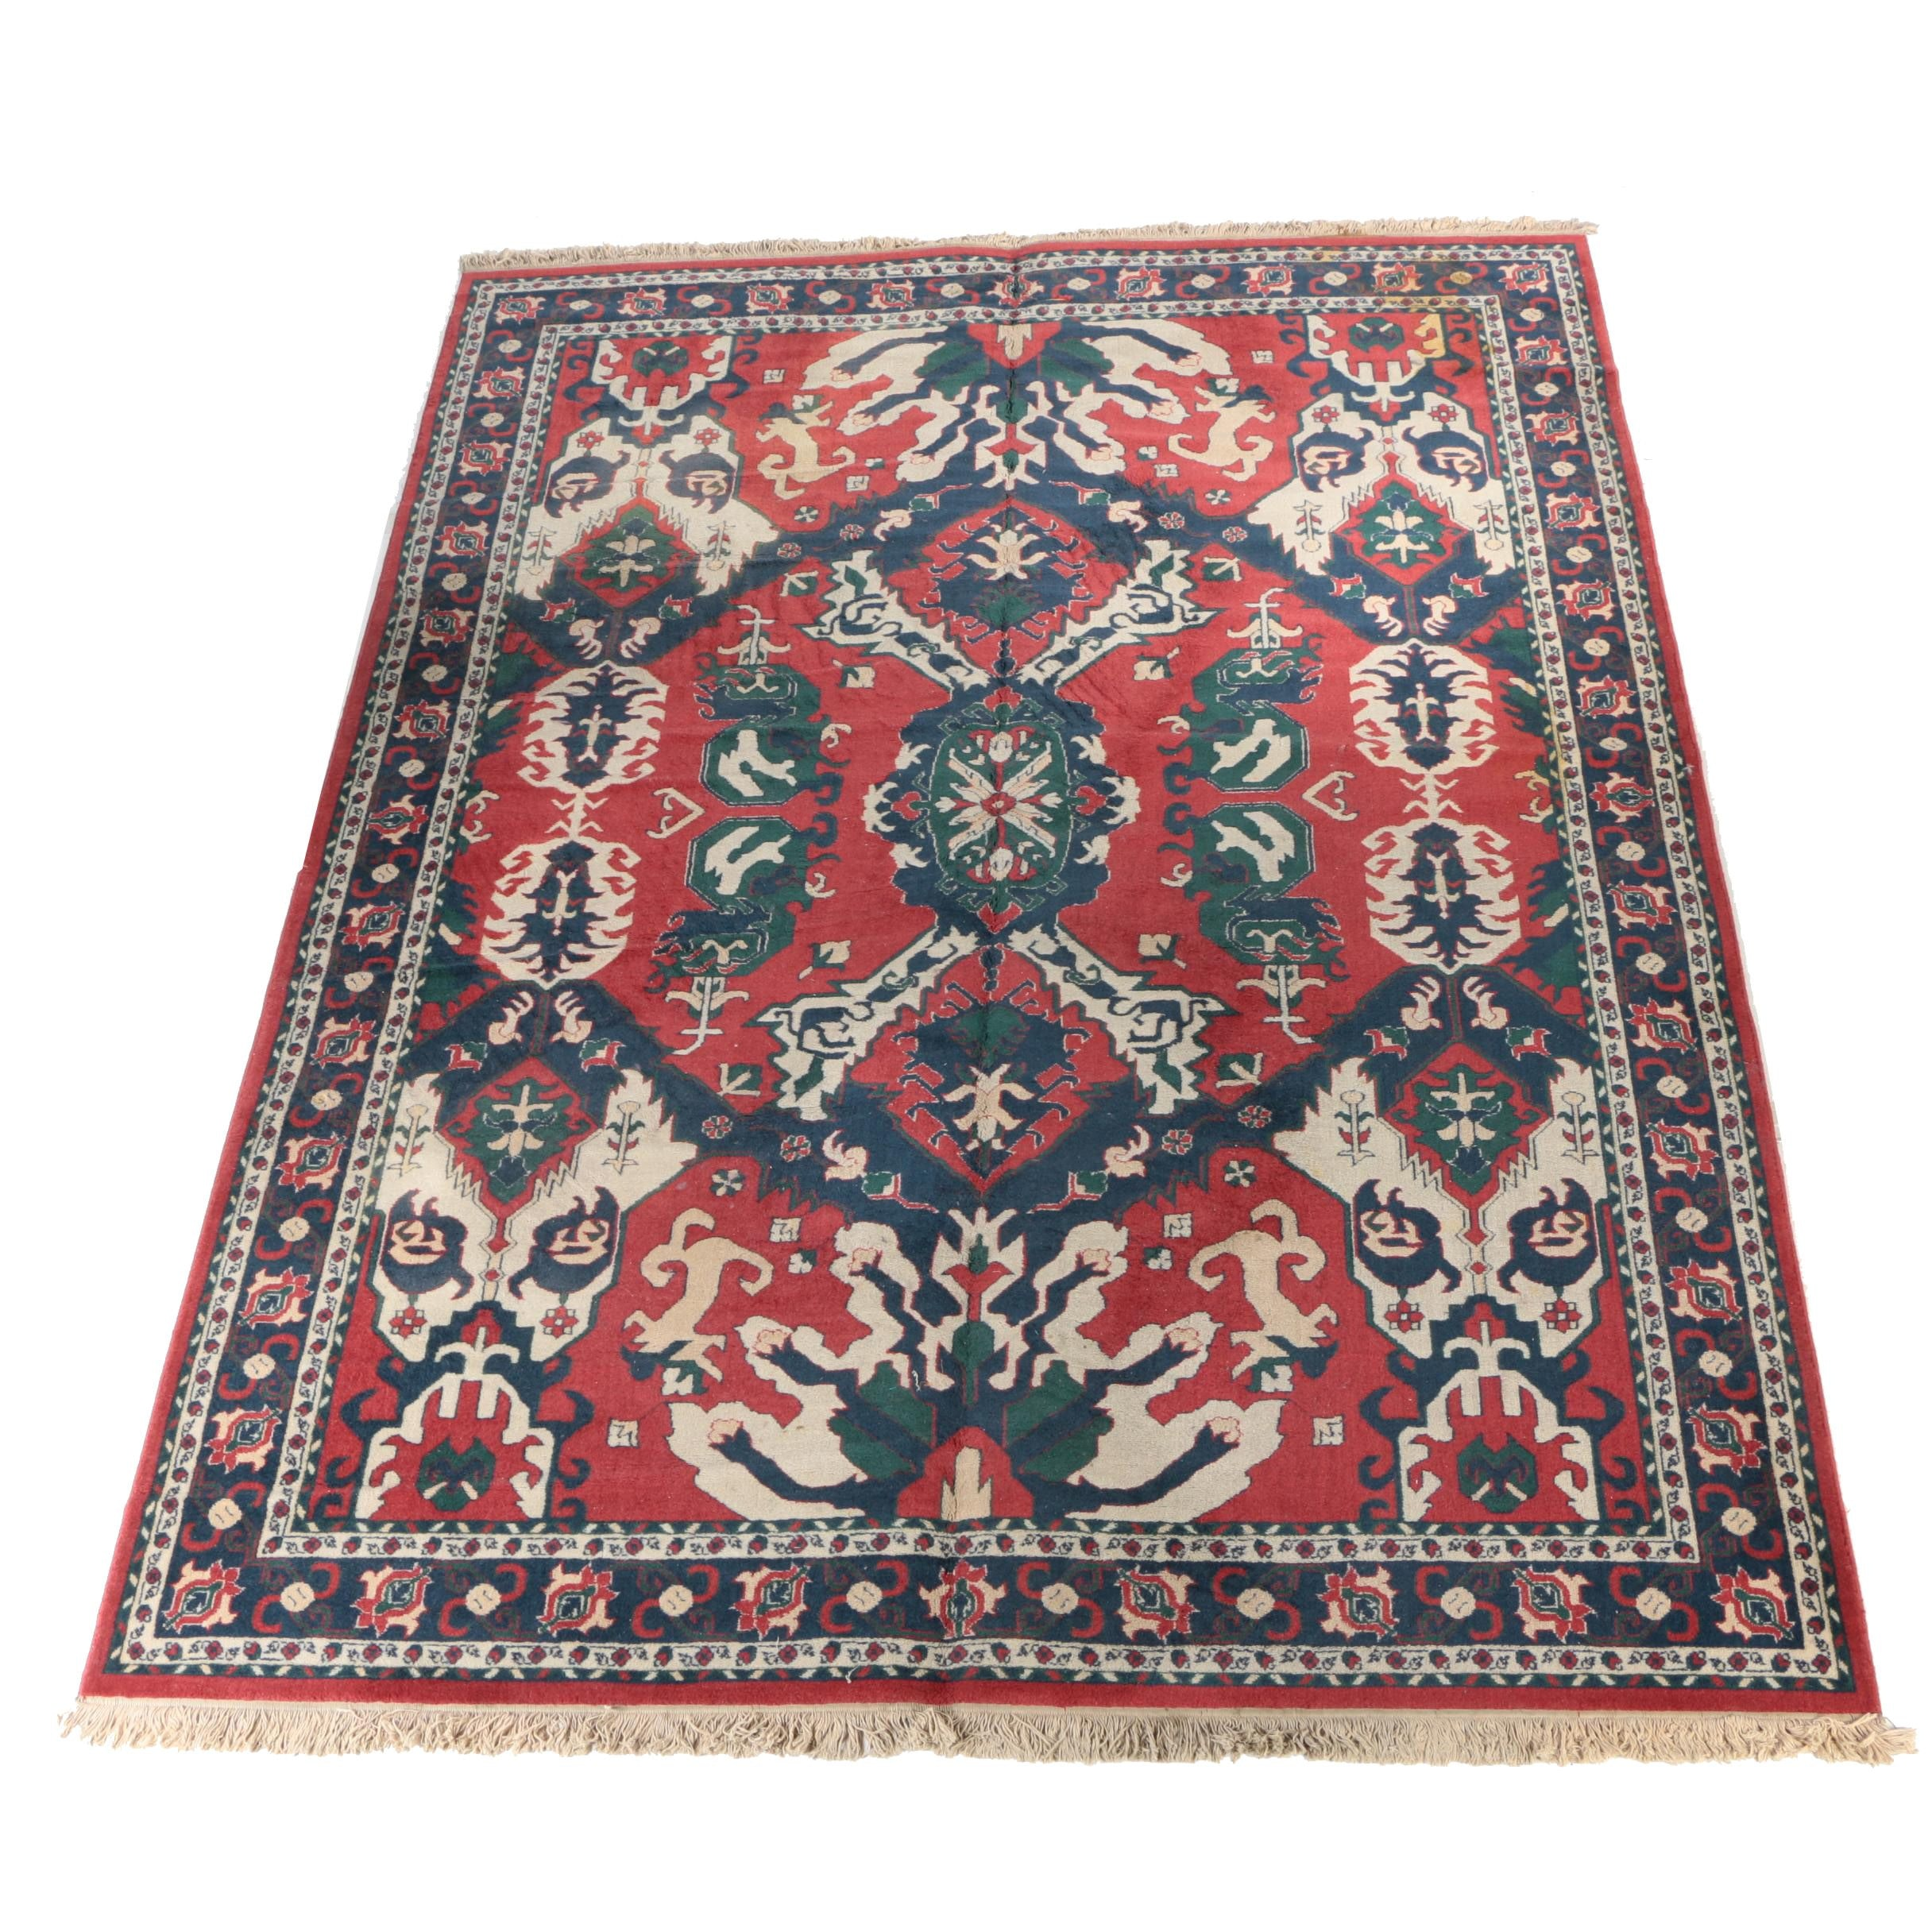 Large Power-Loomed Turkish Wool Area Rug